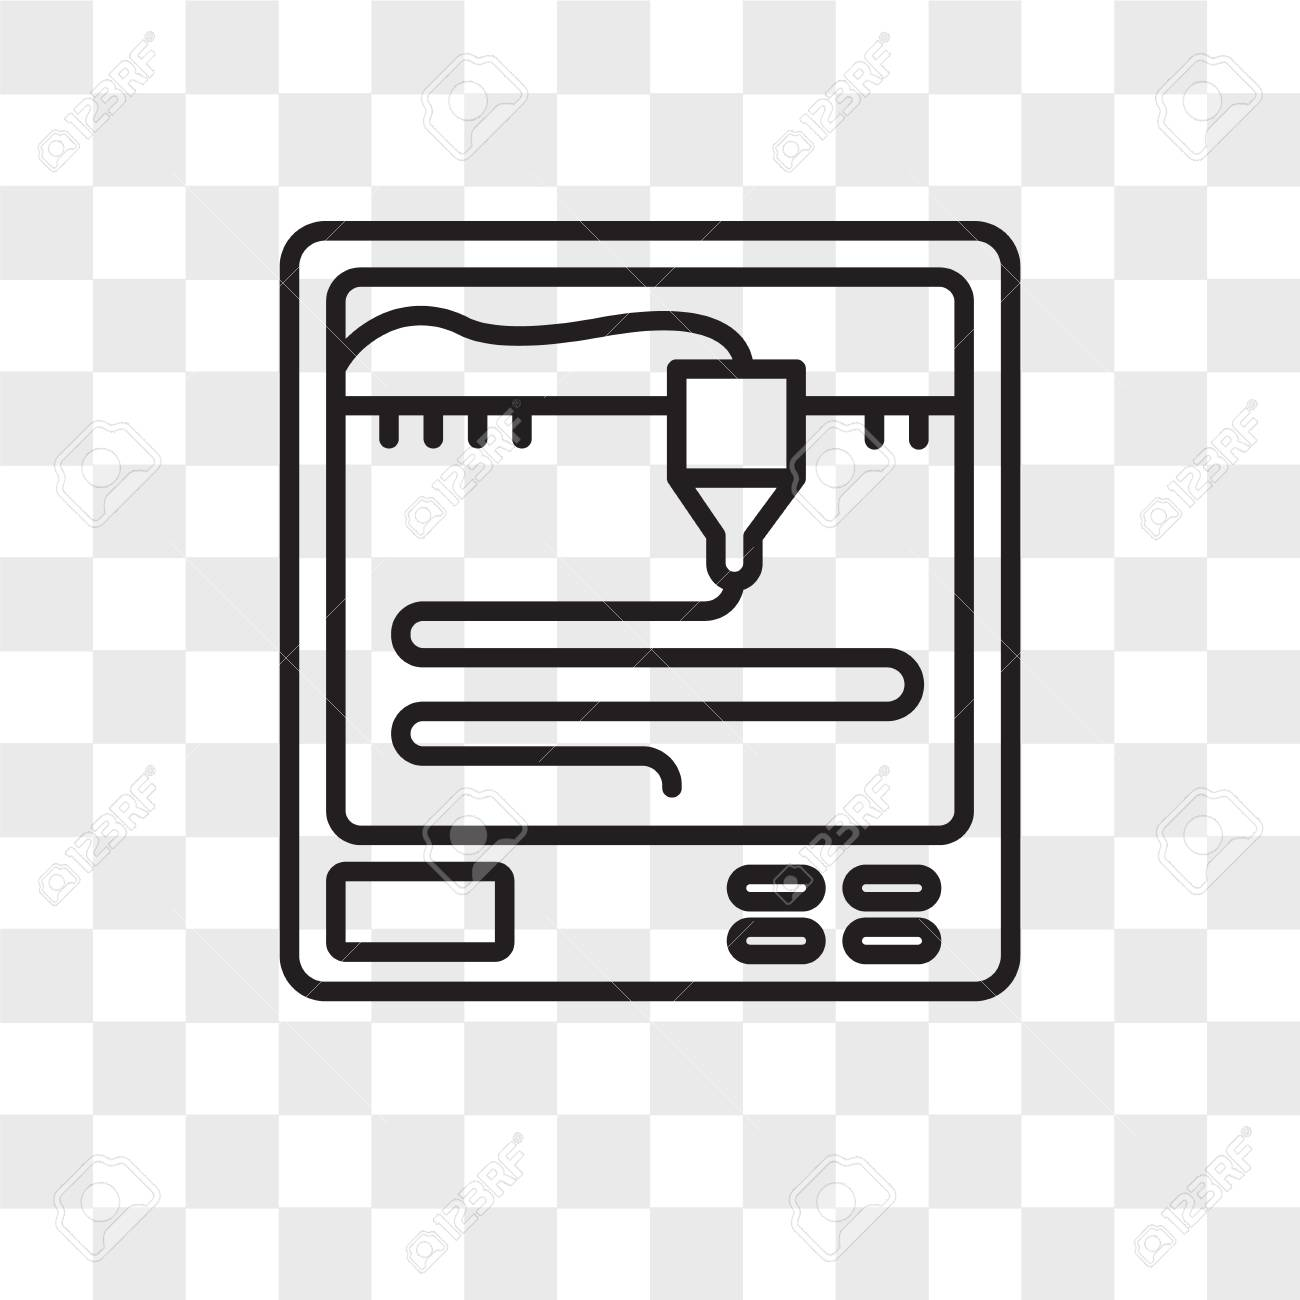 3d printer vector icon isolated on transparent background 3d royalty free cliparts vectors and stock illustration image 107598277 3d printer vector icon isolated on transparent background 3d